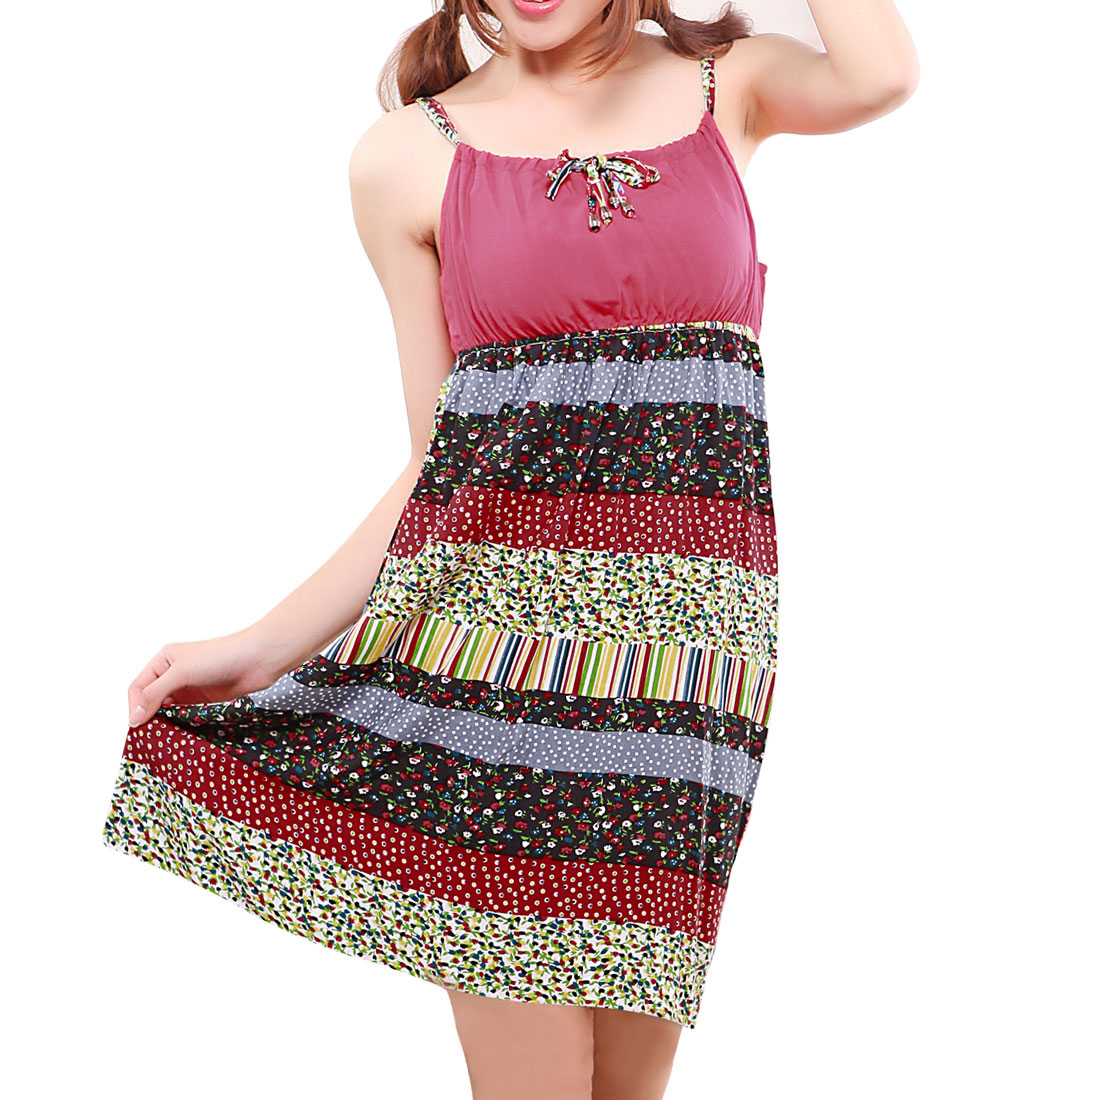 Woman Floral Colorful Sleeveless Slip Nightgown Dress XS